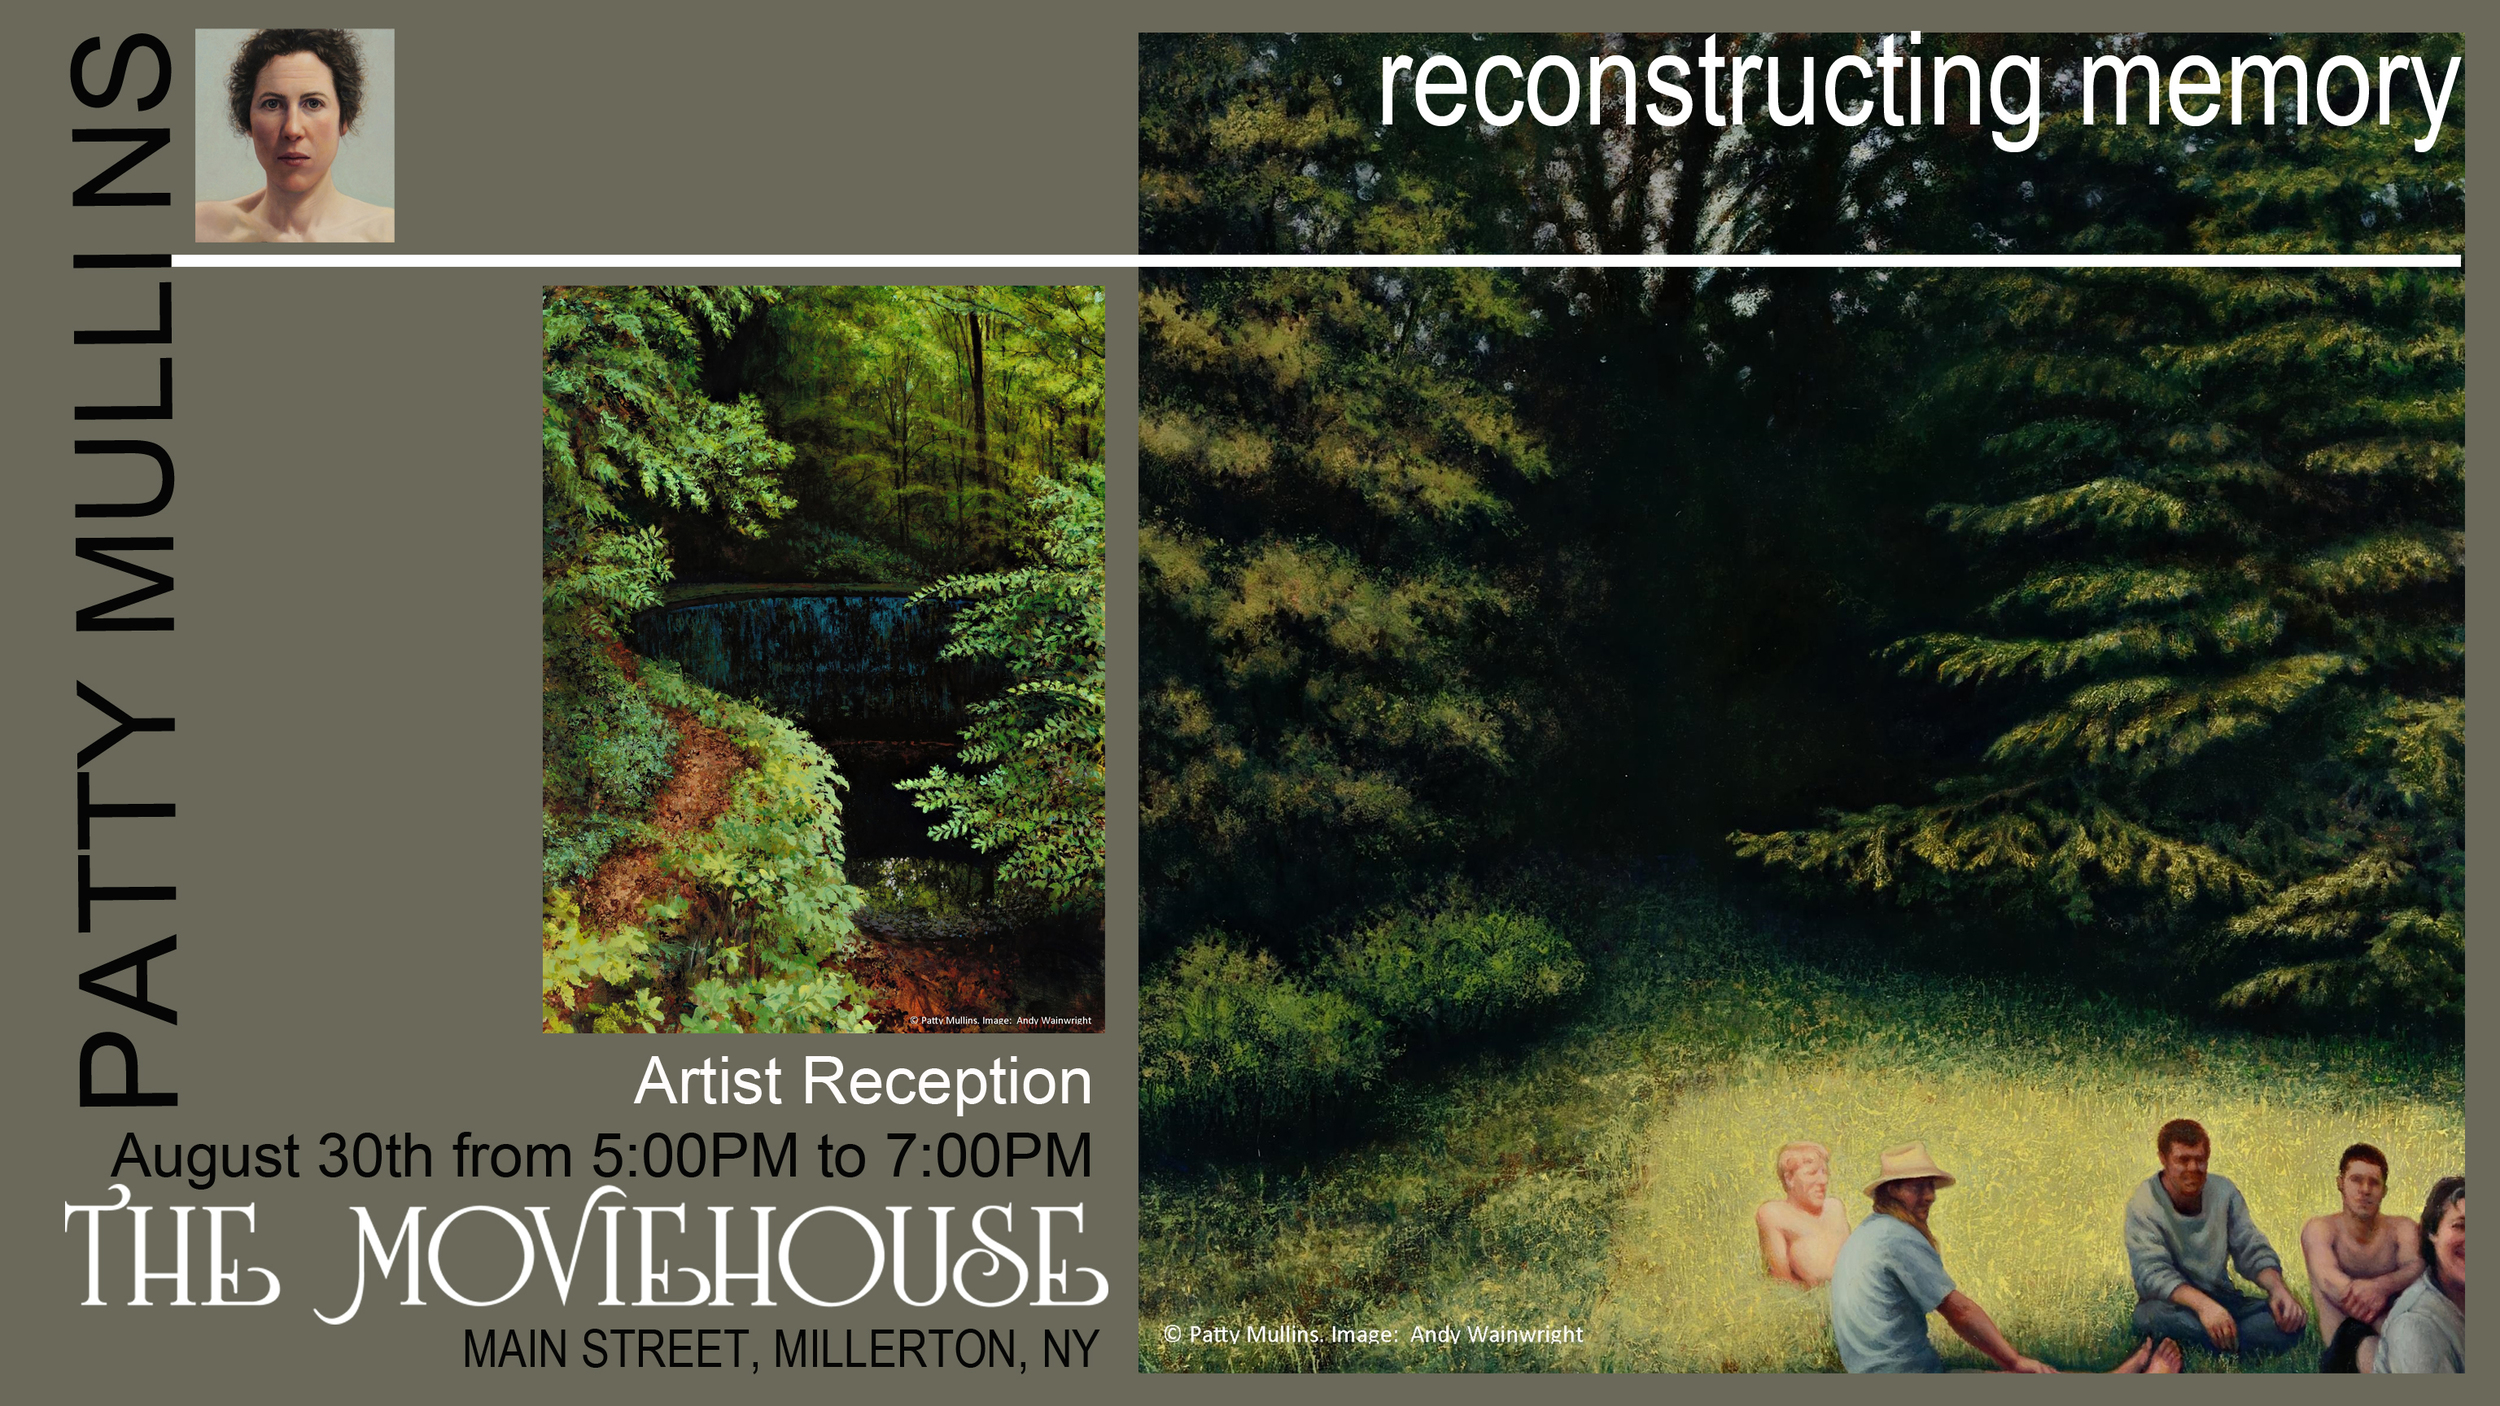 "Please join me for the opening reception of ""Reconstructing Memory"", Saturday, August 30th, 2014, from 5-7 pm at the Moviehouse in Millerton, NY."